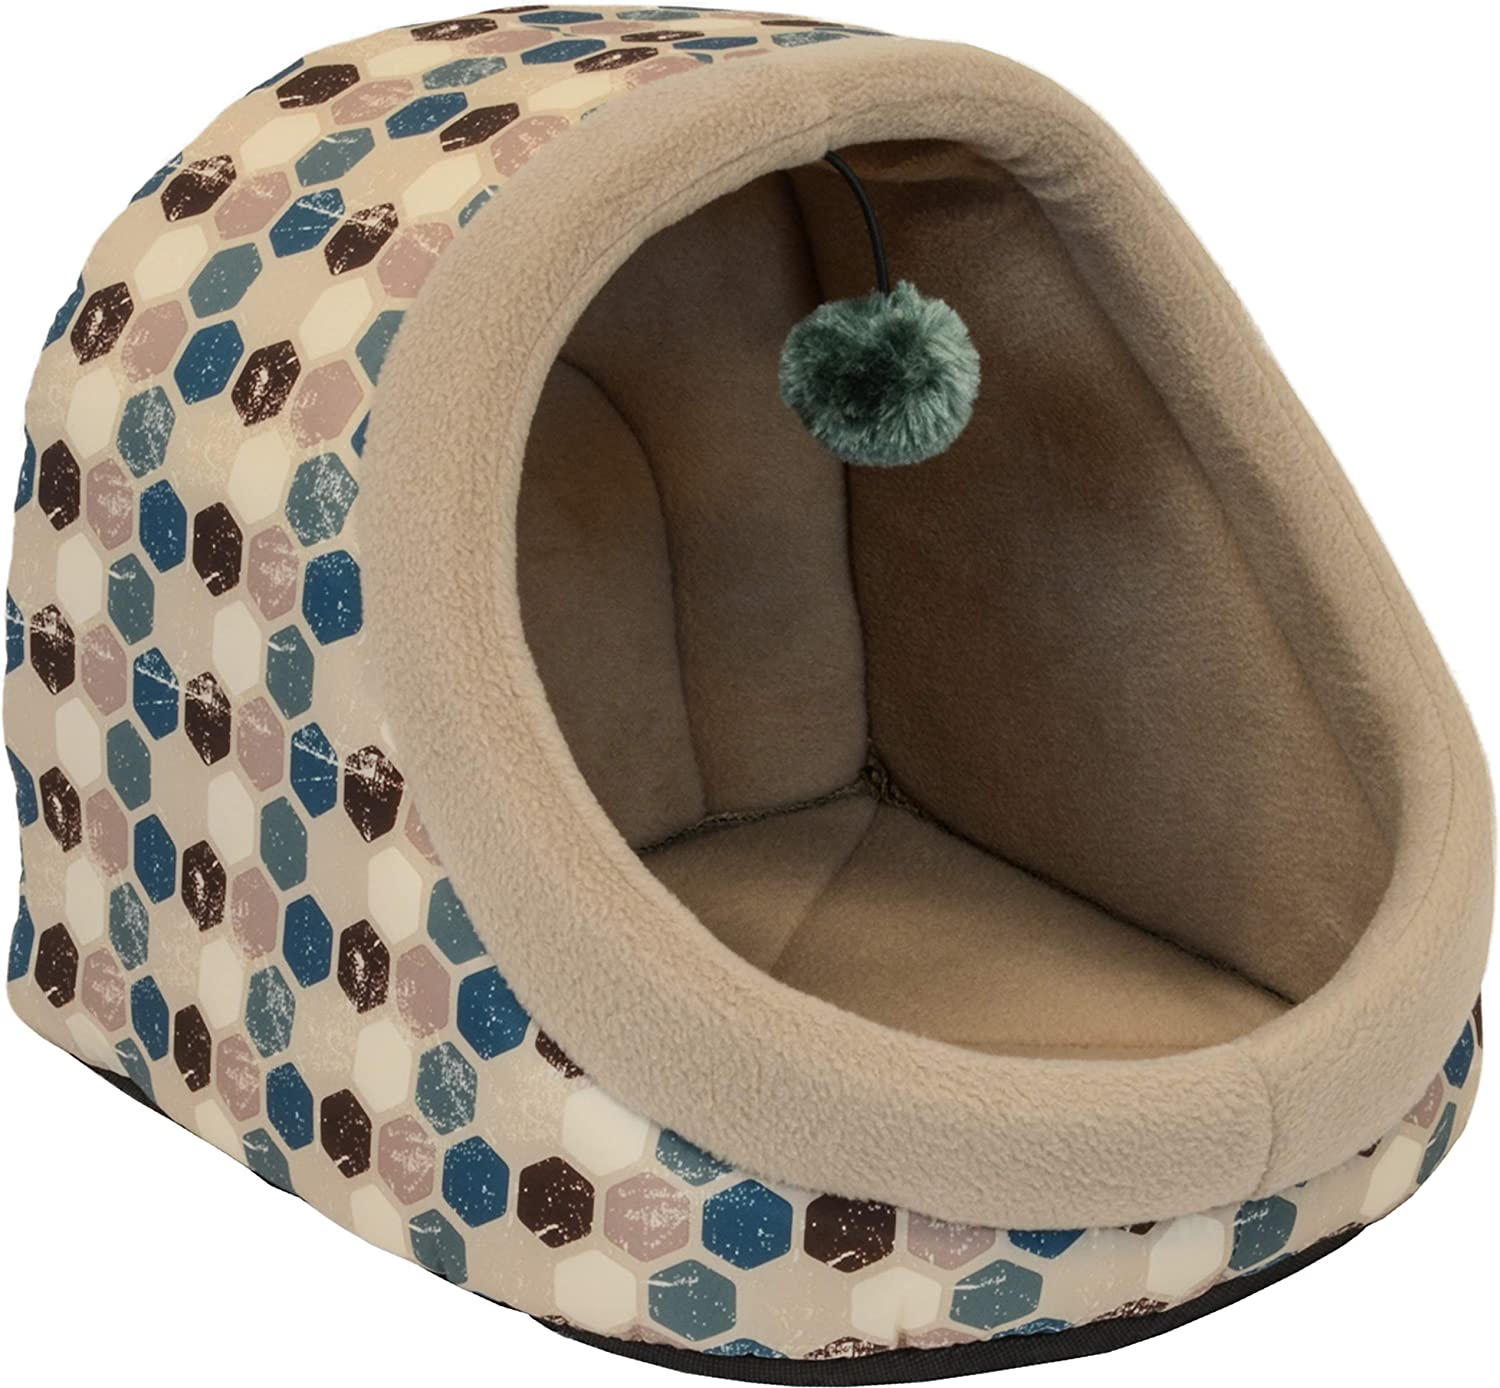 Cozy Pet Hooded Cat Bed with Play Toy